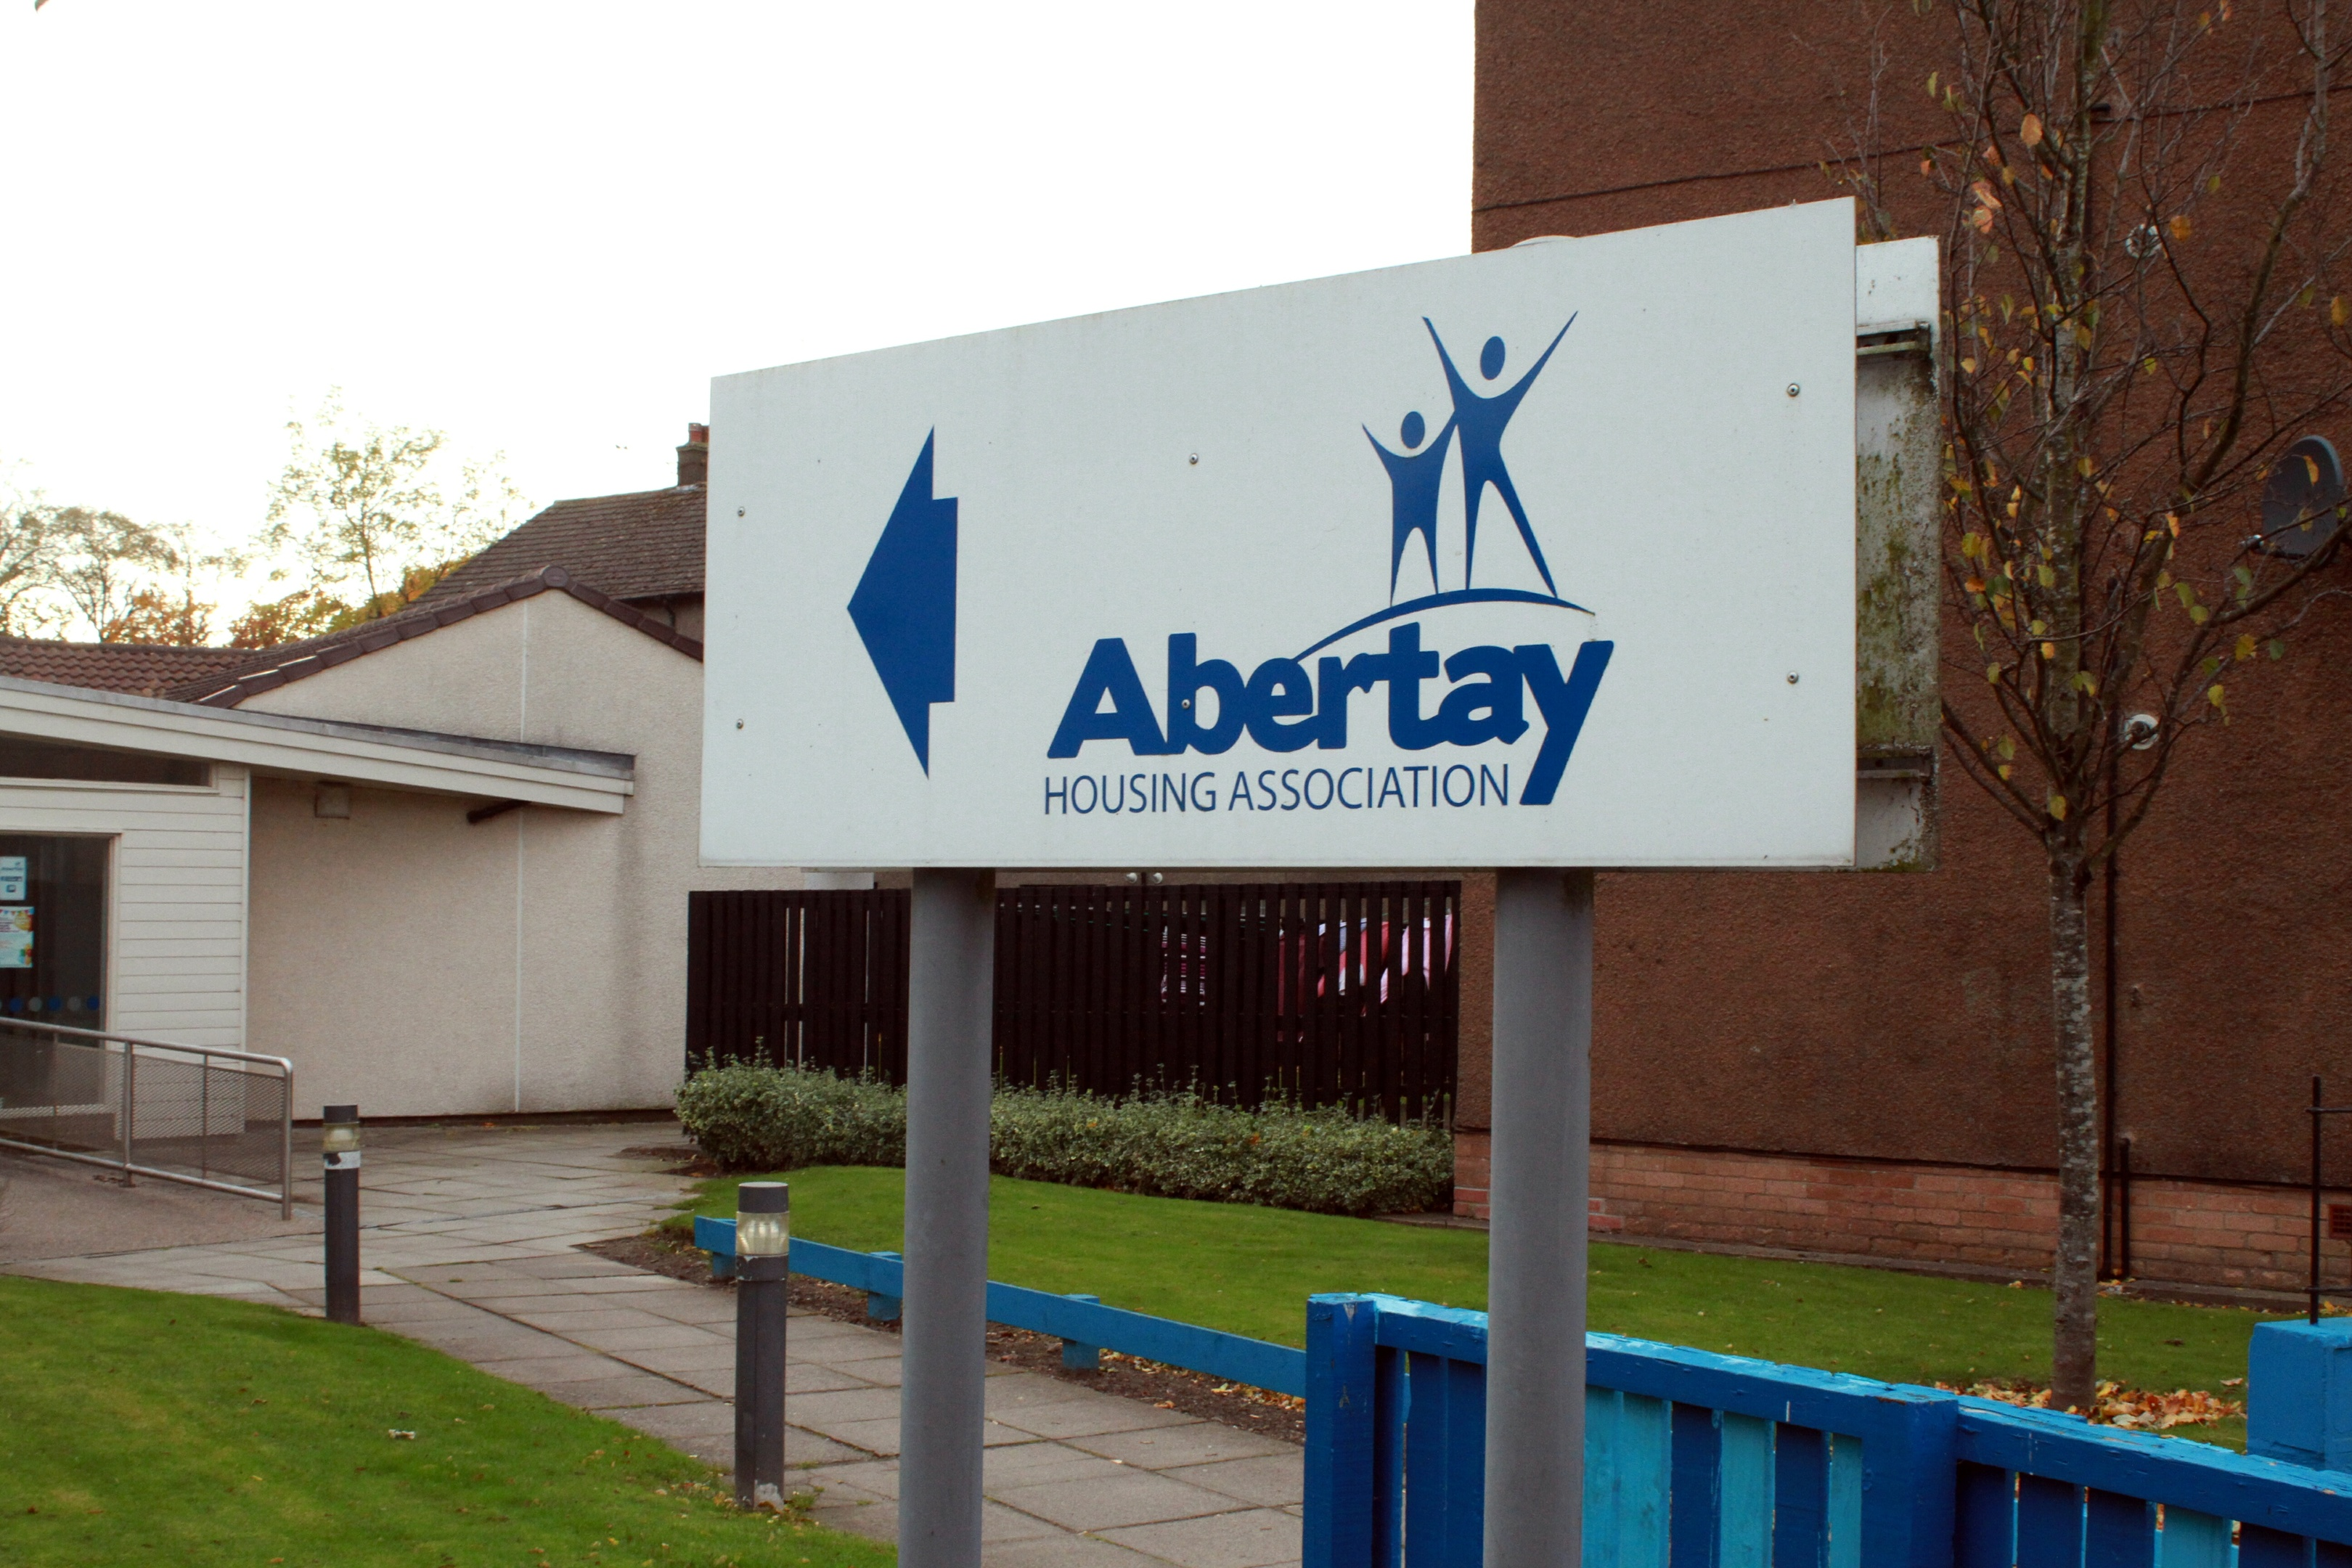 The launch of the world's first degree in computer games at Abertay has helped transform Dundee, says the citation